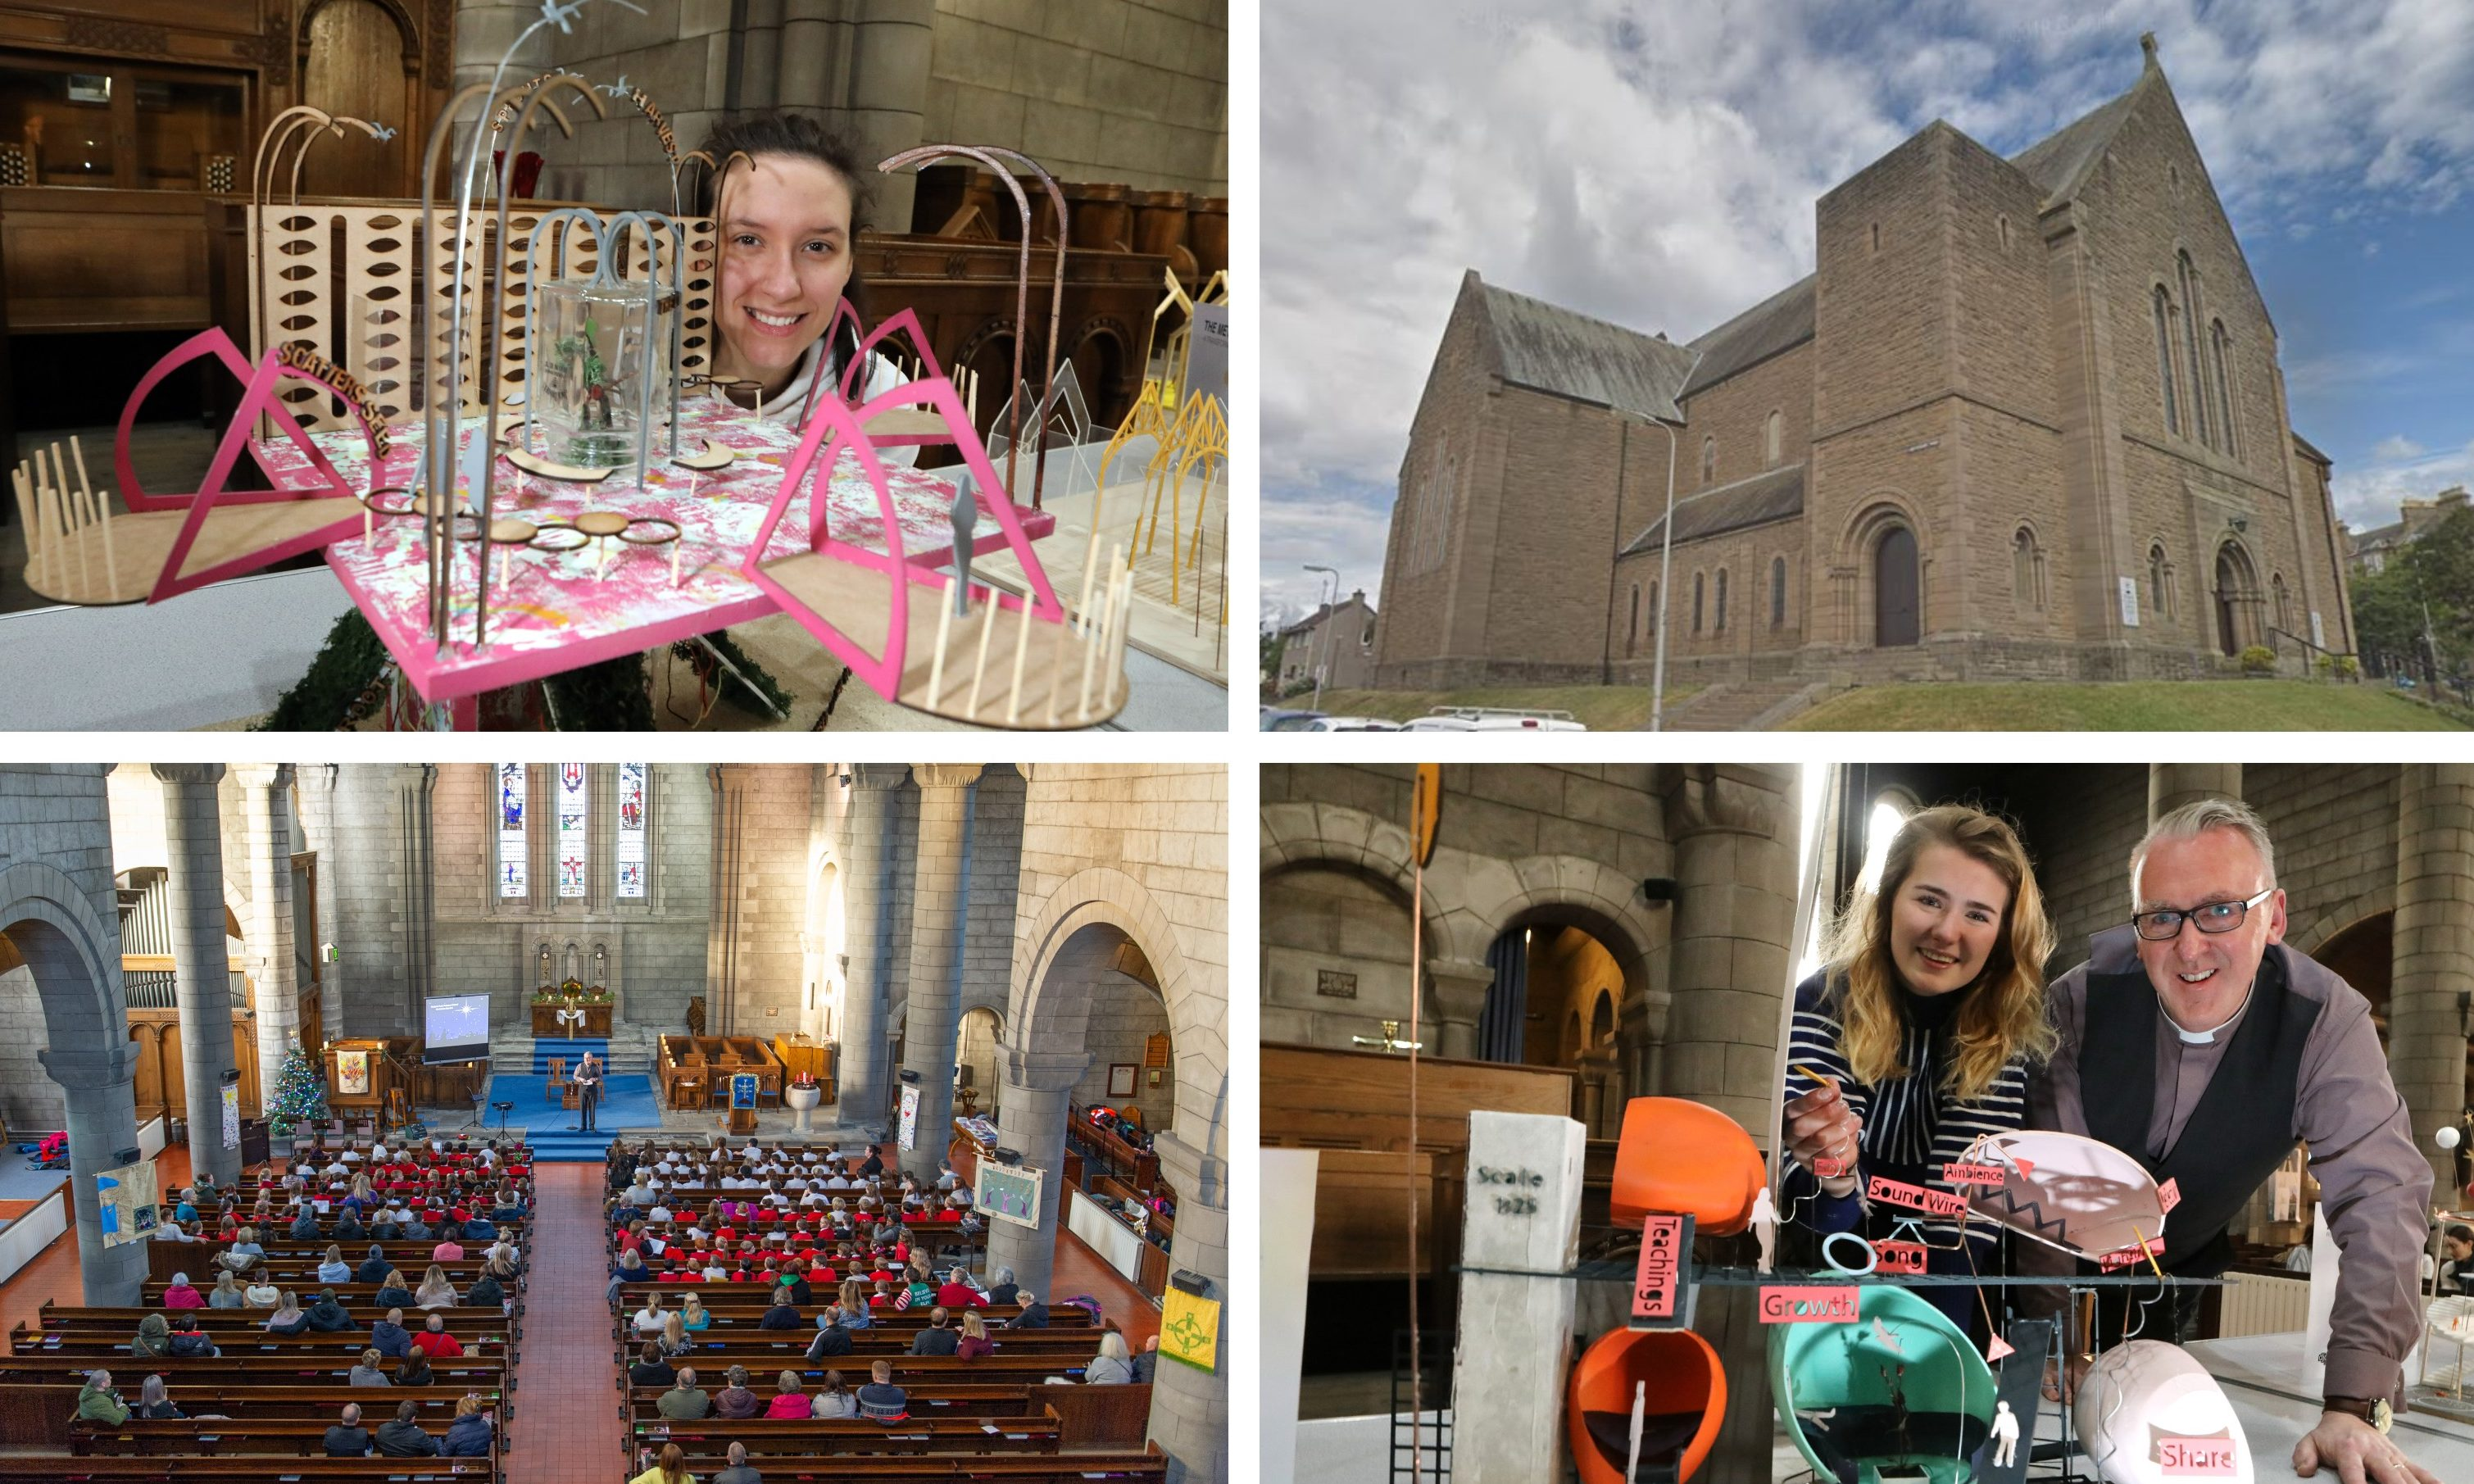 Students have unveiled their visions of a complete St John's Cross Parish Church building.